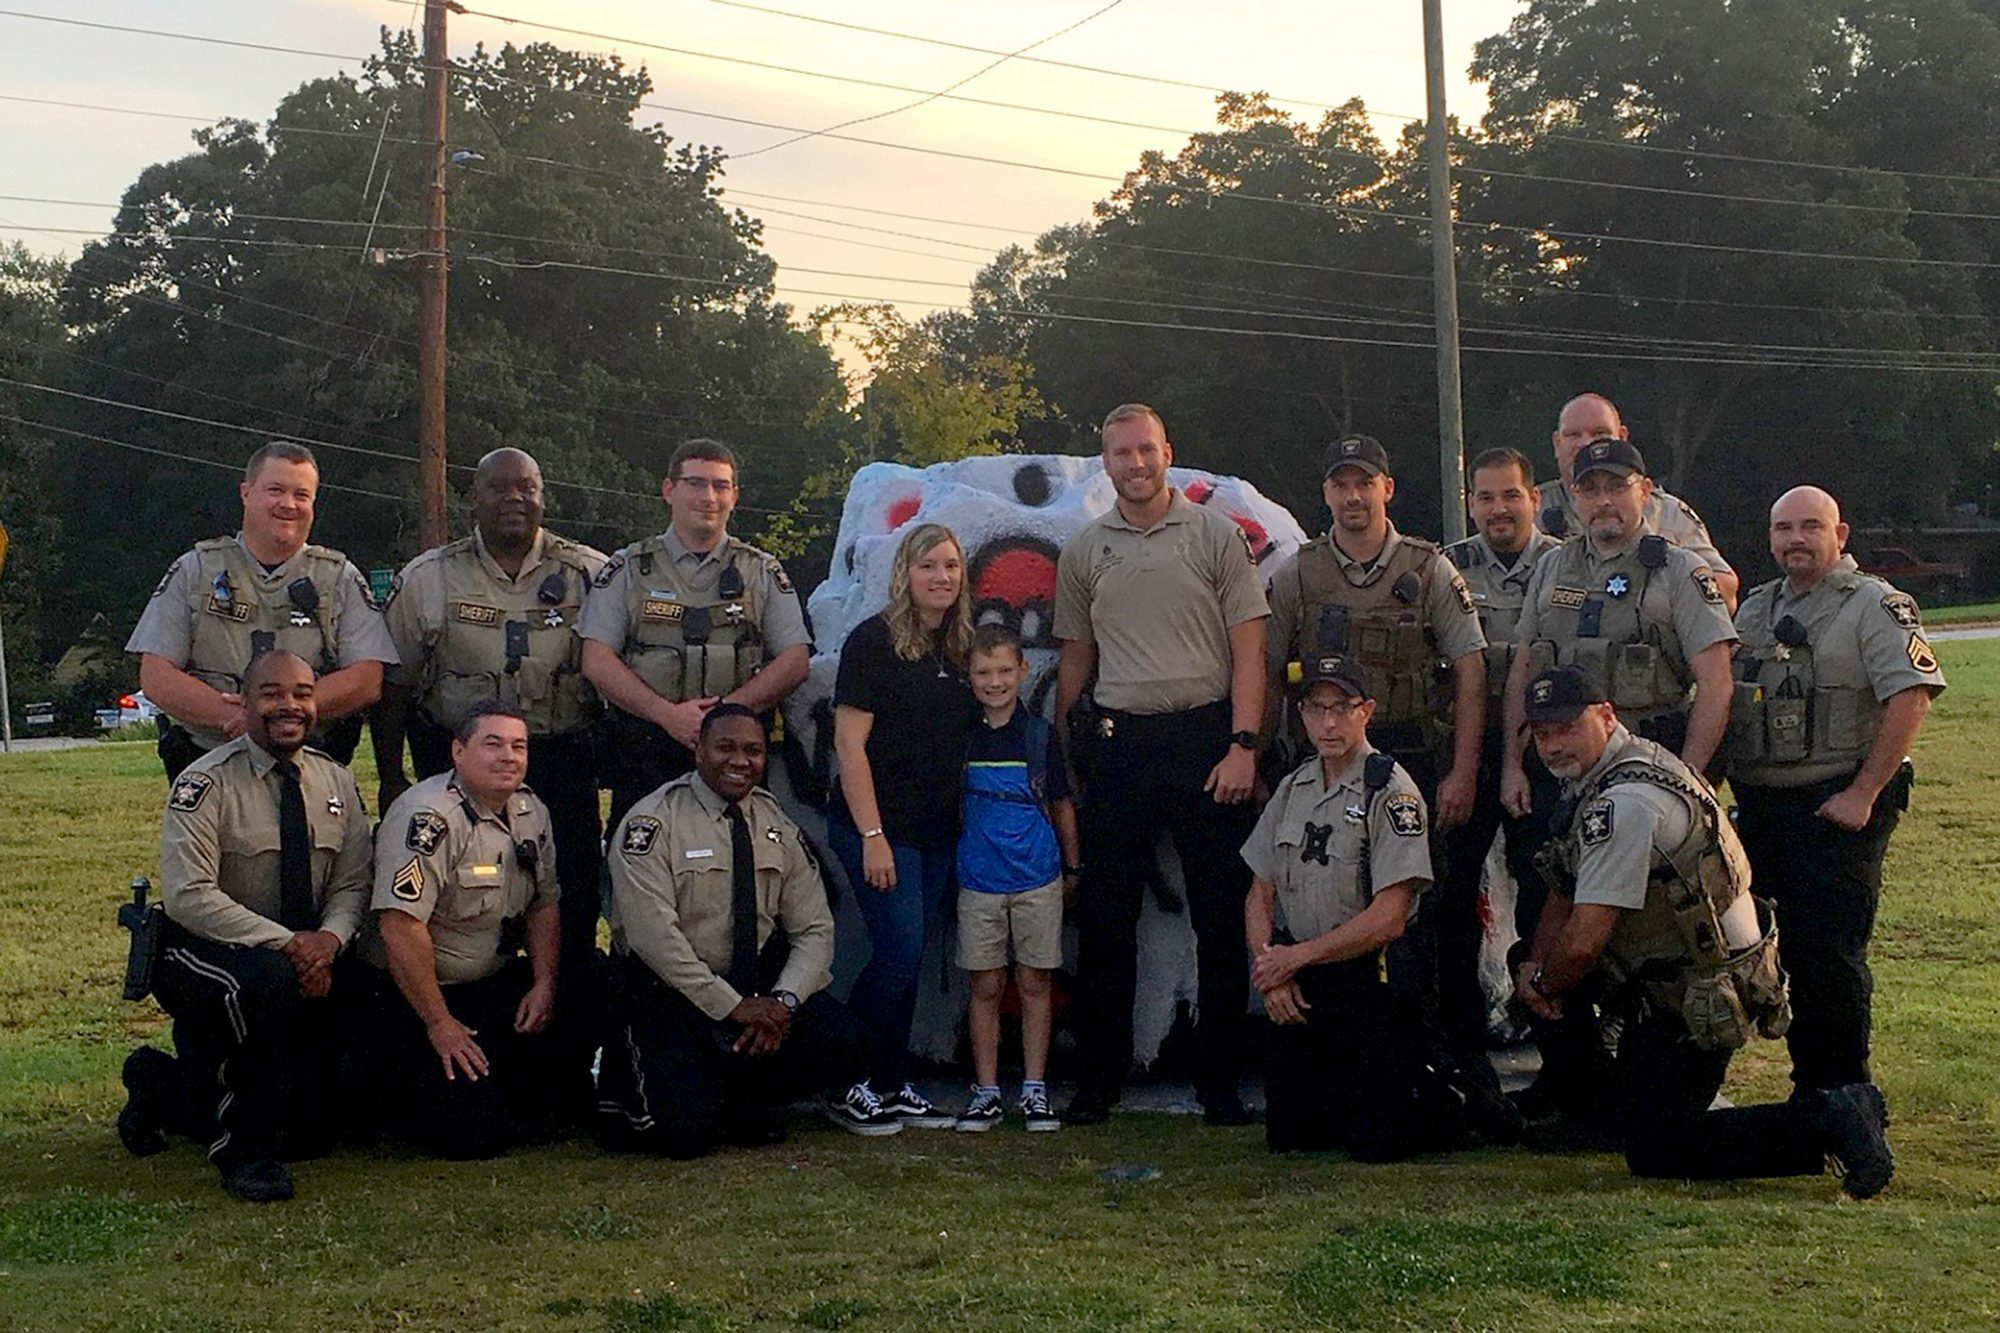 Sheriff's Deputies Escort Boy to School After His Father Was Killed in the Line of Duty